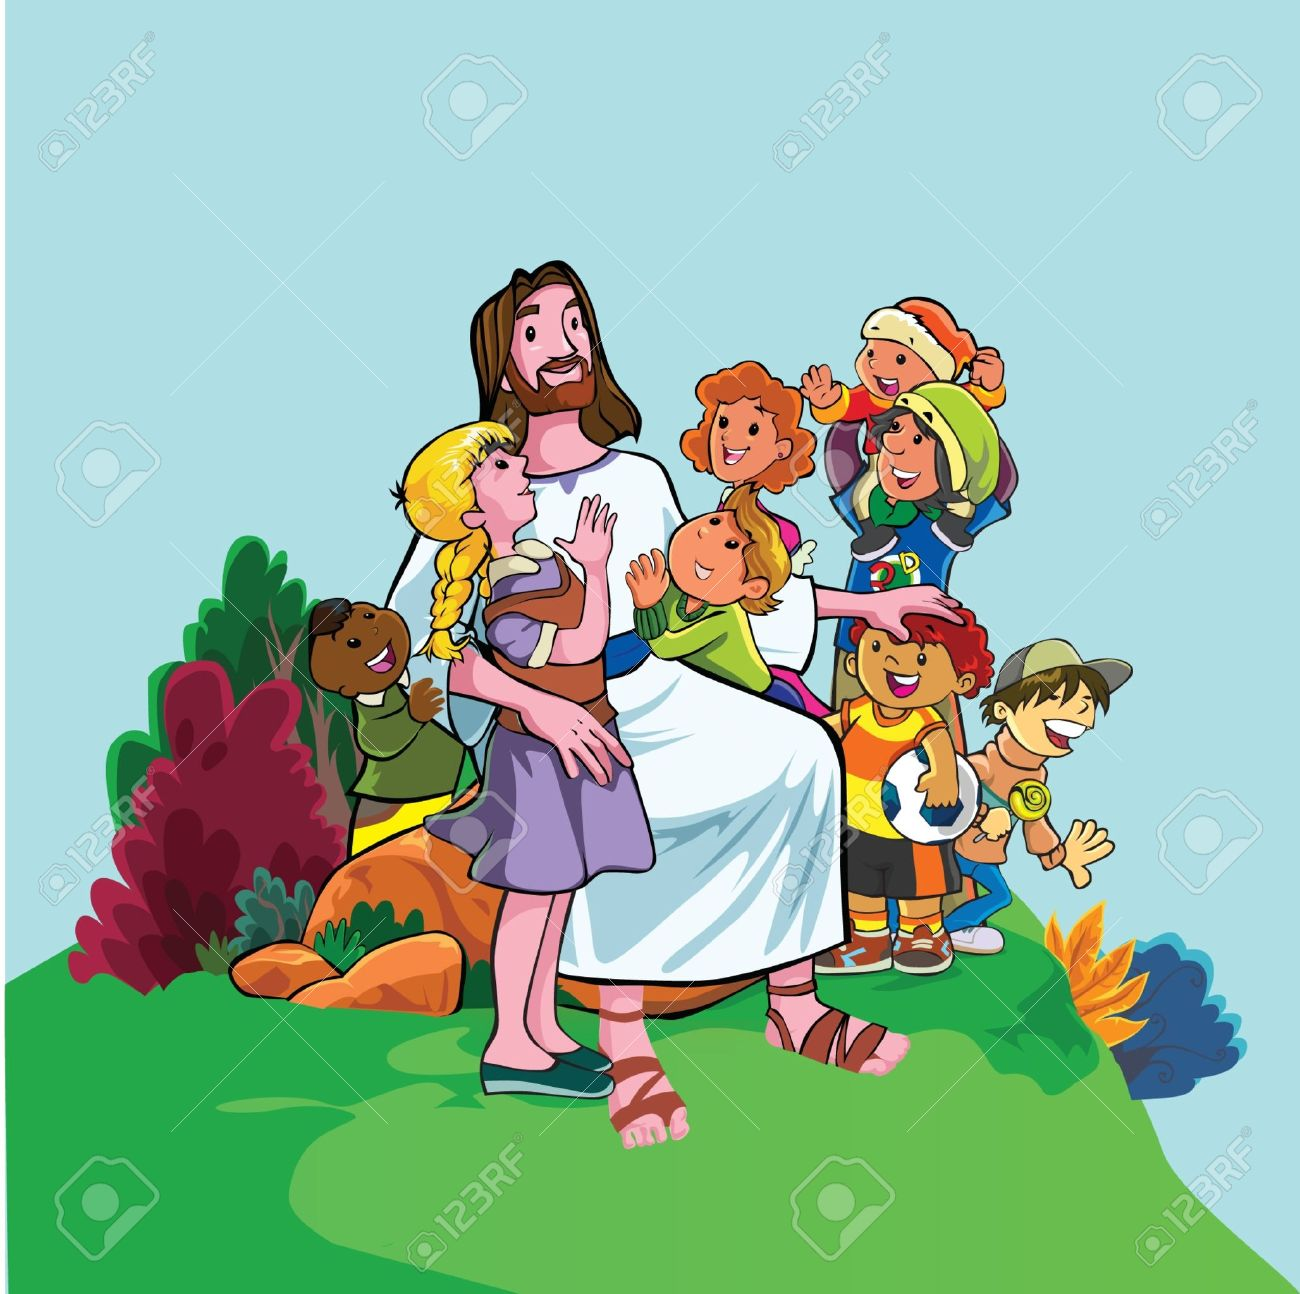 The Merciful Jesus With Children Royalty Free Cliparts Vectors And Stock Illustration Image 18868060